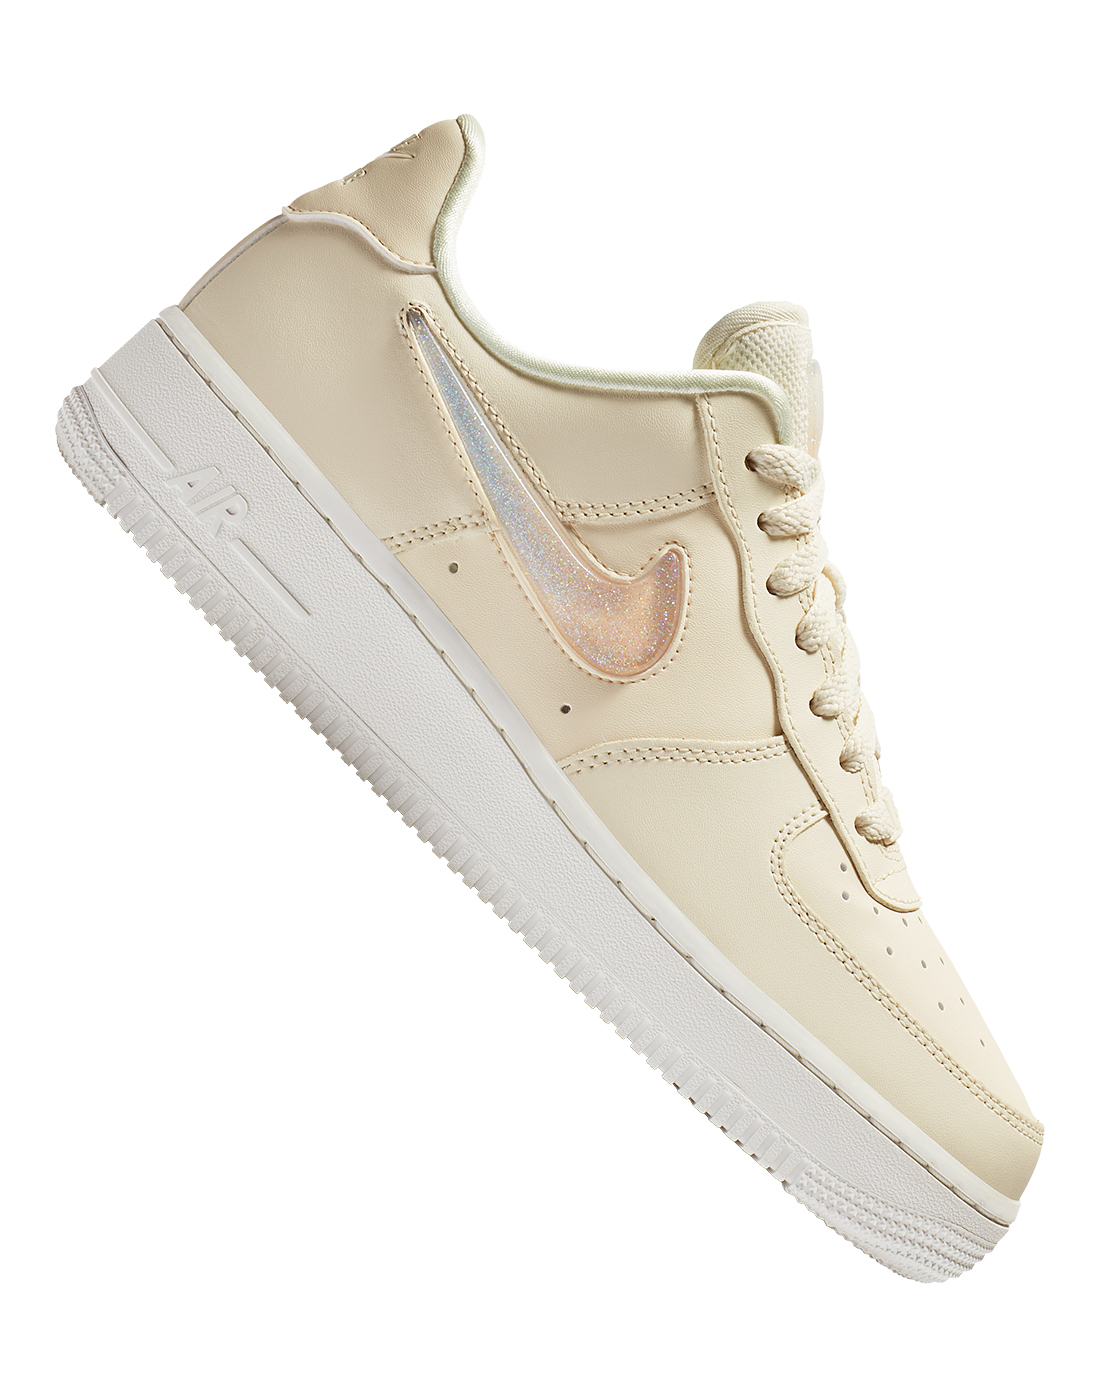 factory authentic 5a545 29af5 Womens Air Force 1 ...